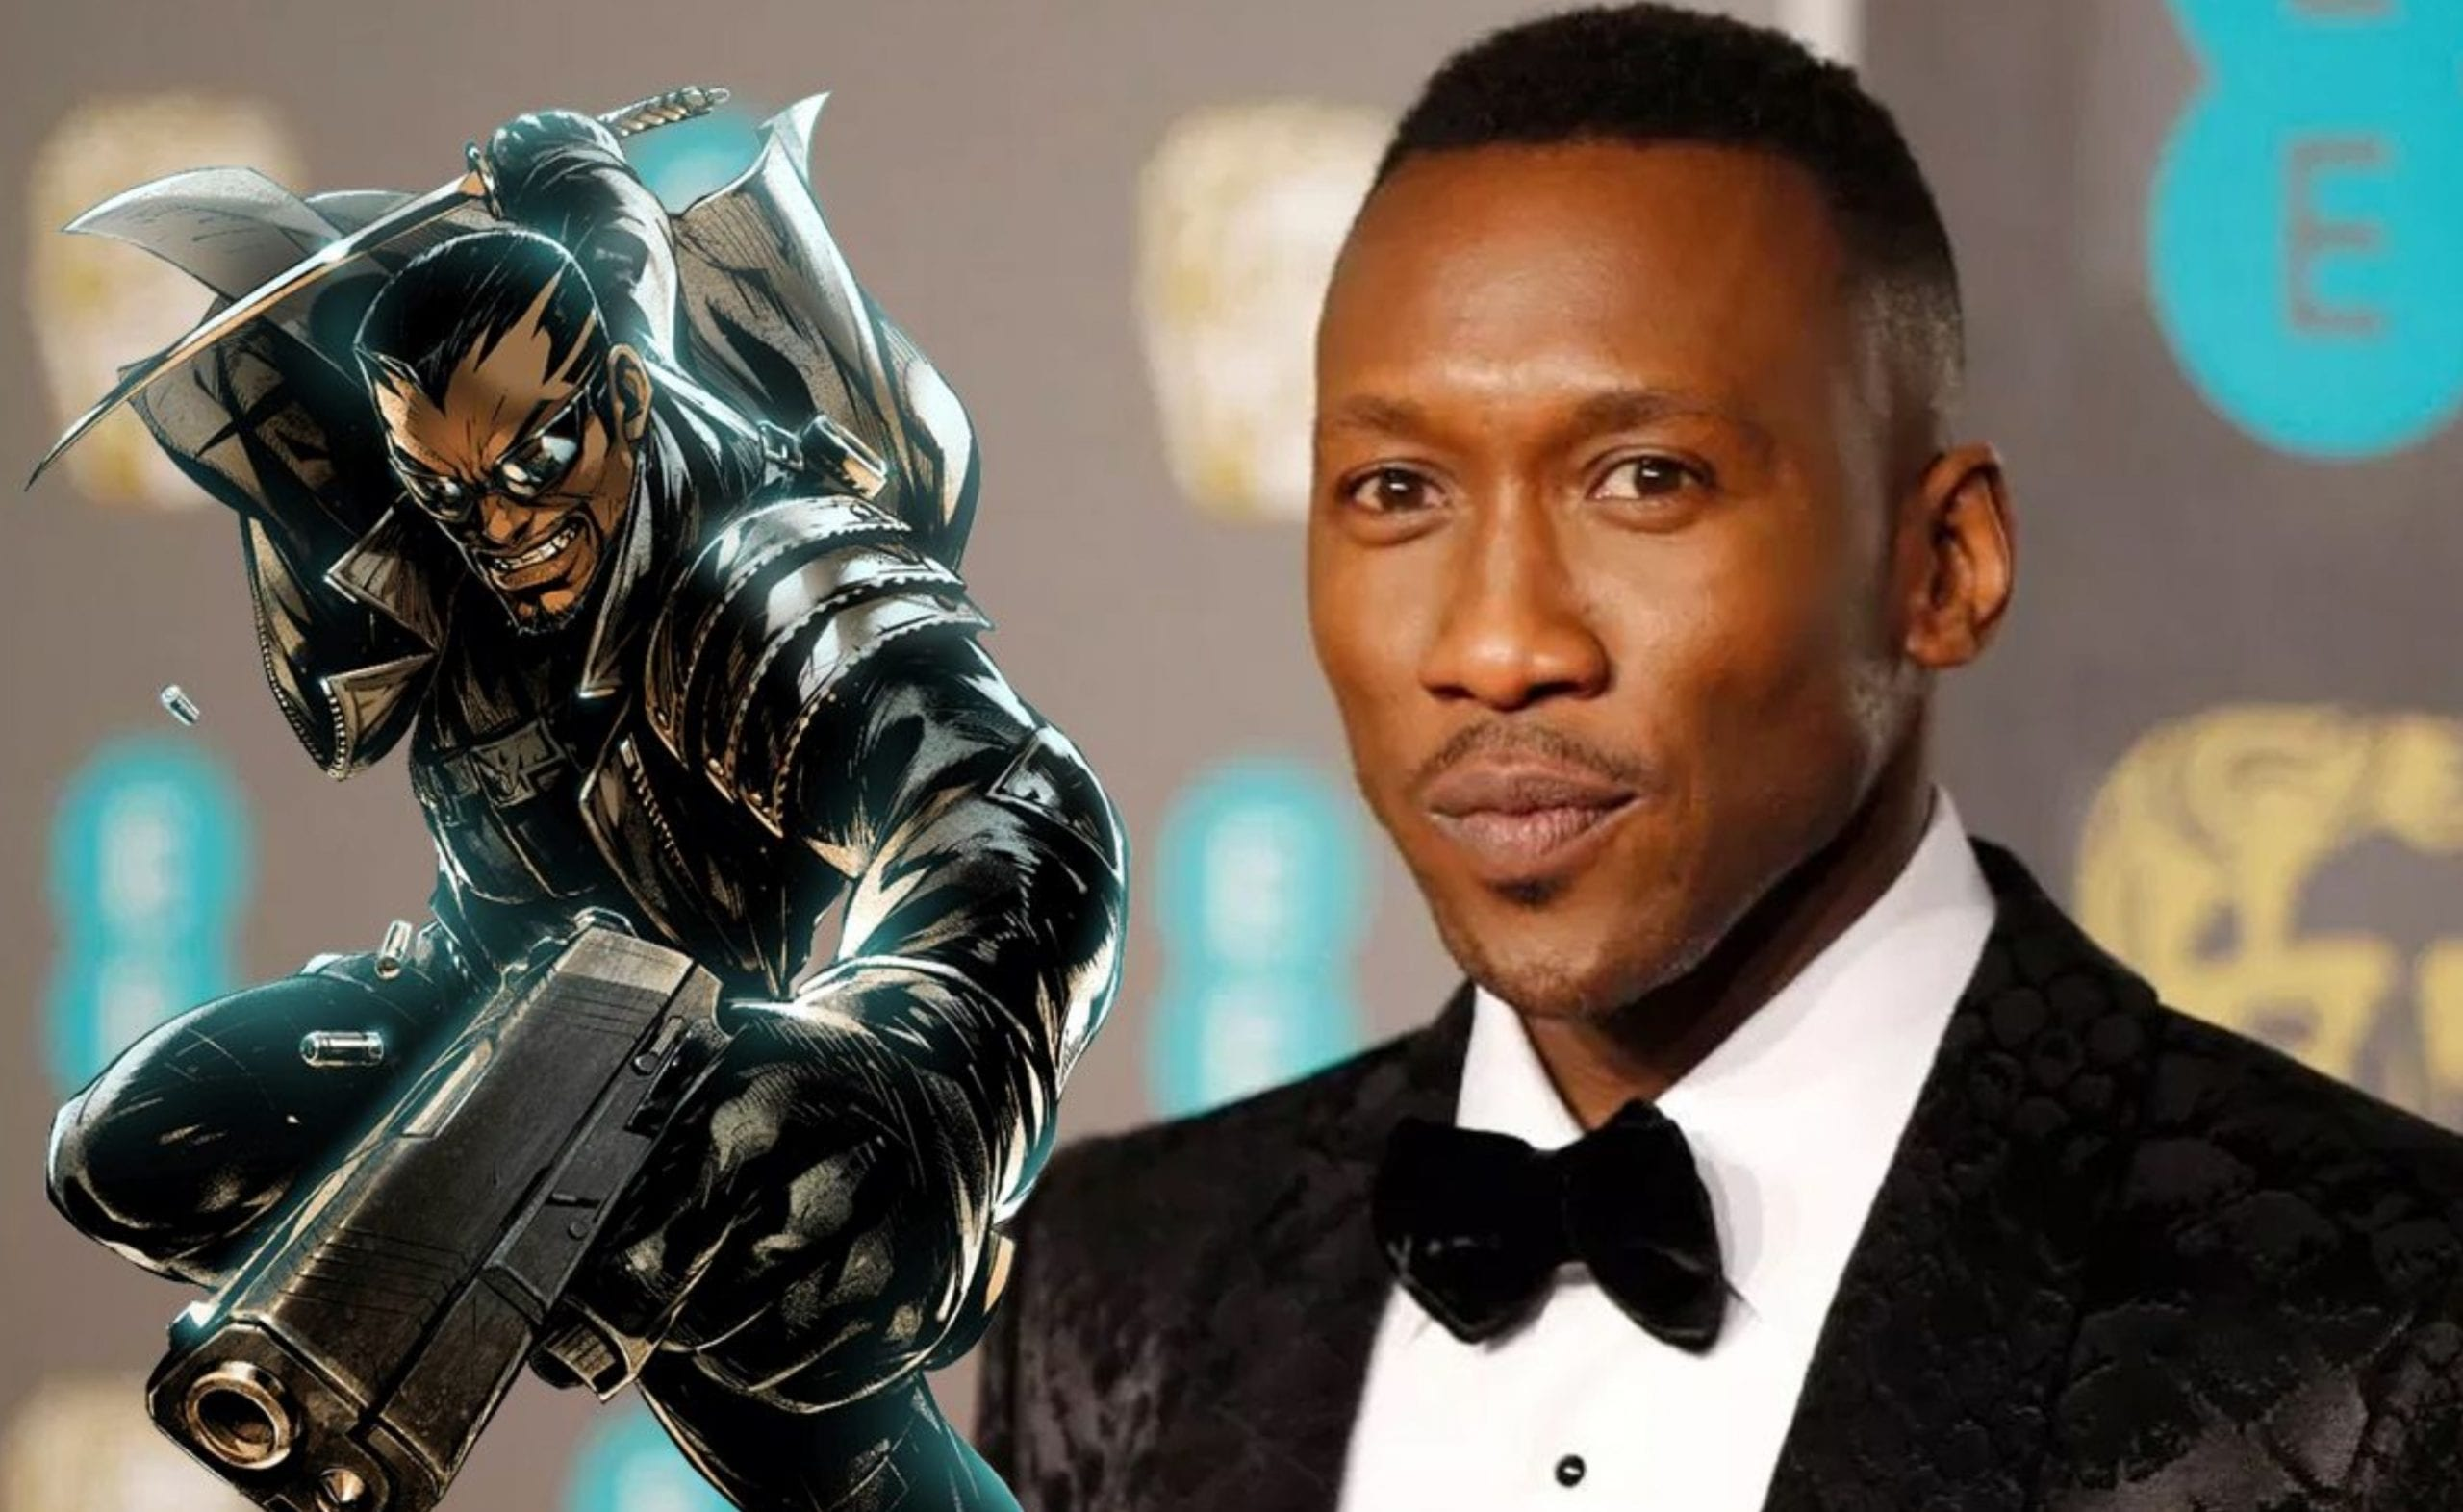 Mahershala Ali shares new artwork of him as Blade